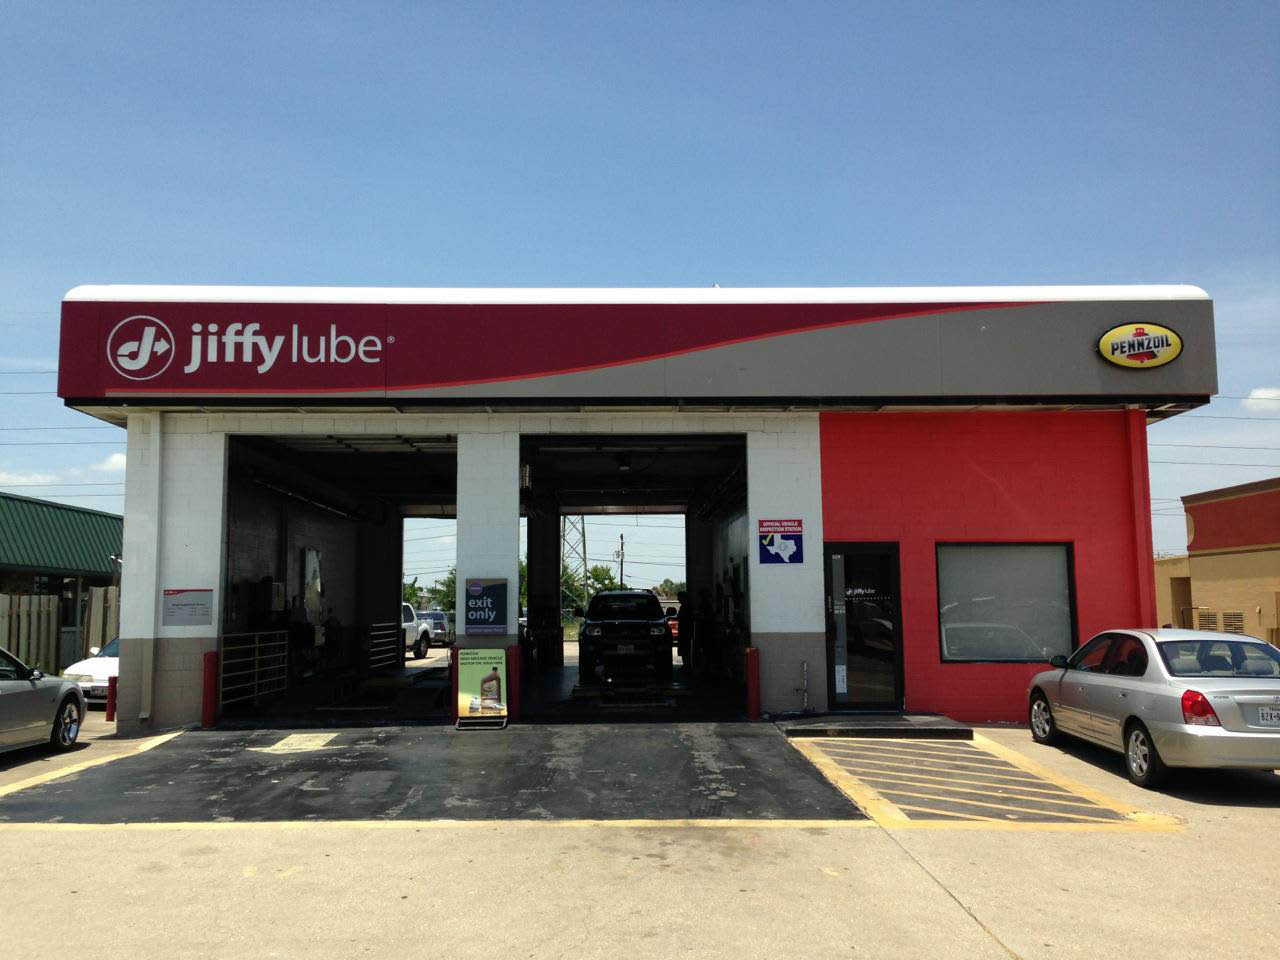 oil change coupons jiffy lube on el dorado blvd webster tx. Black Bedroom Furniture Sets. Home Design Ideas